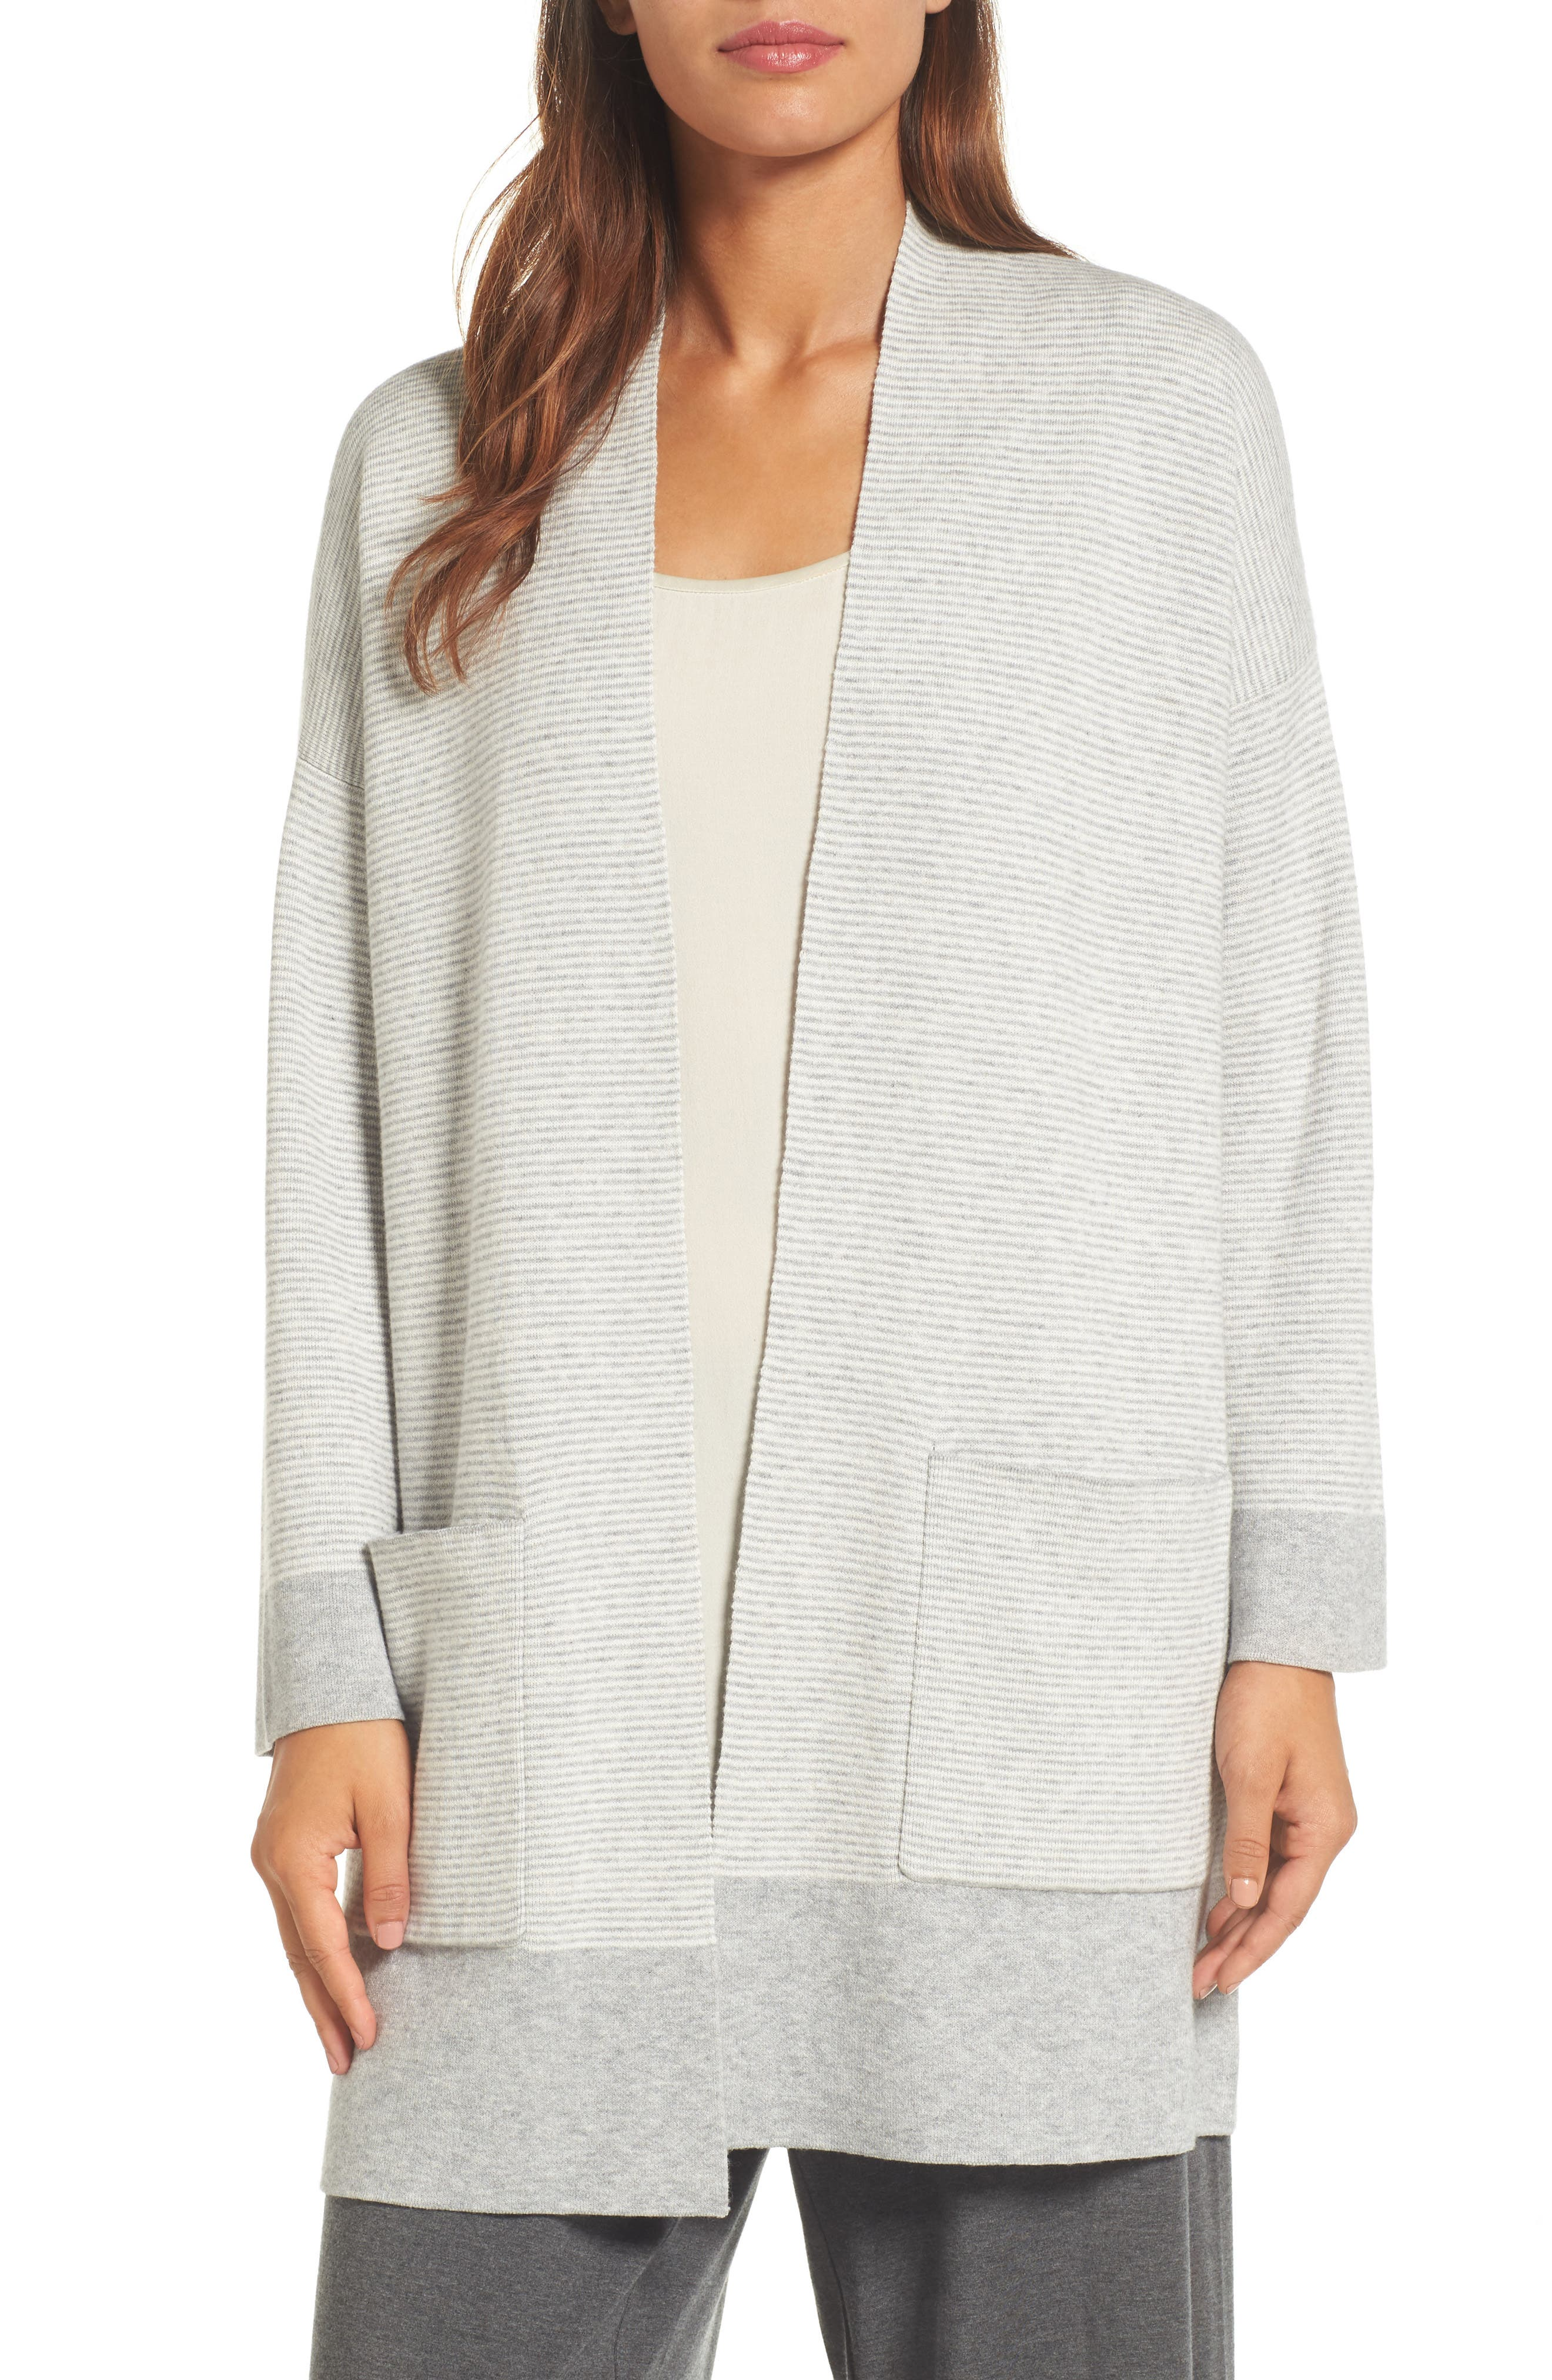 Eileen Fisher Reversible Organic Cotton Blend Cardigan